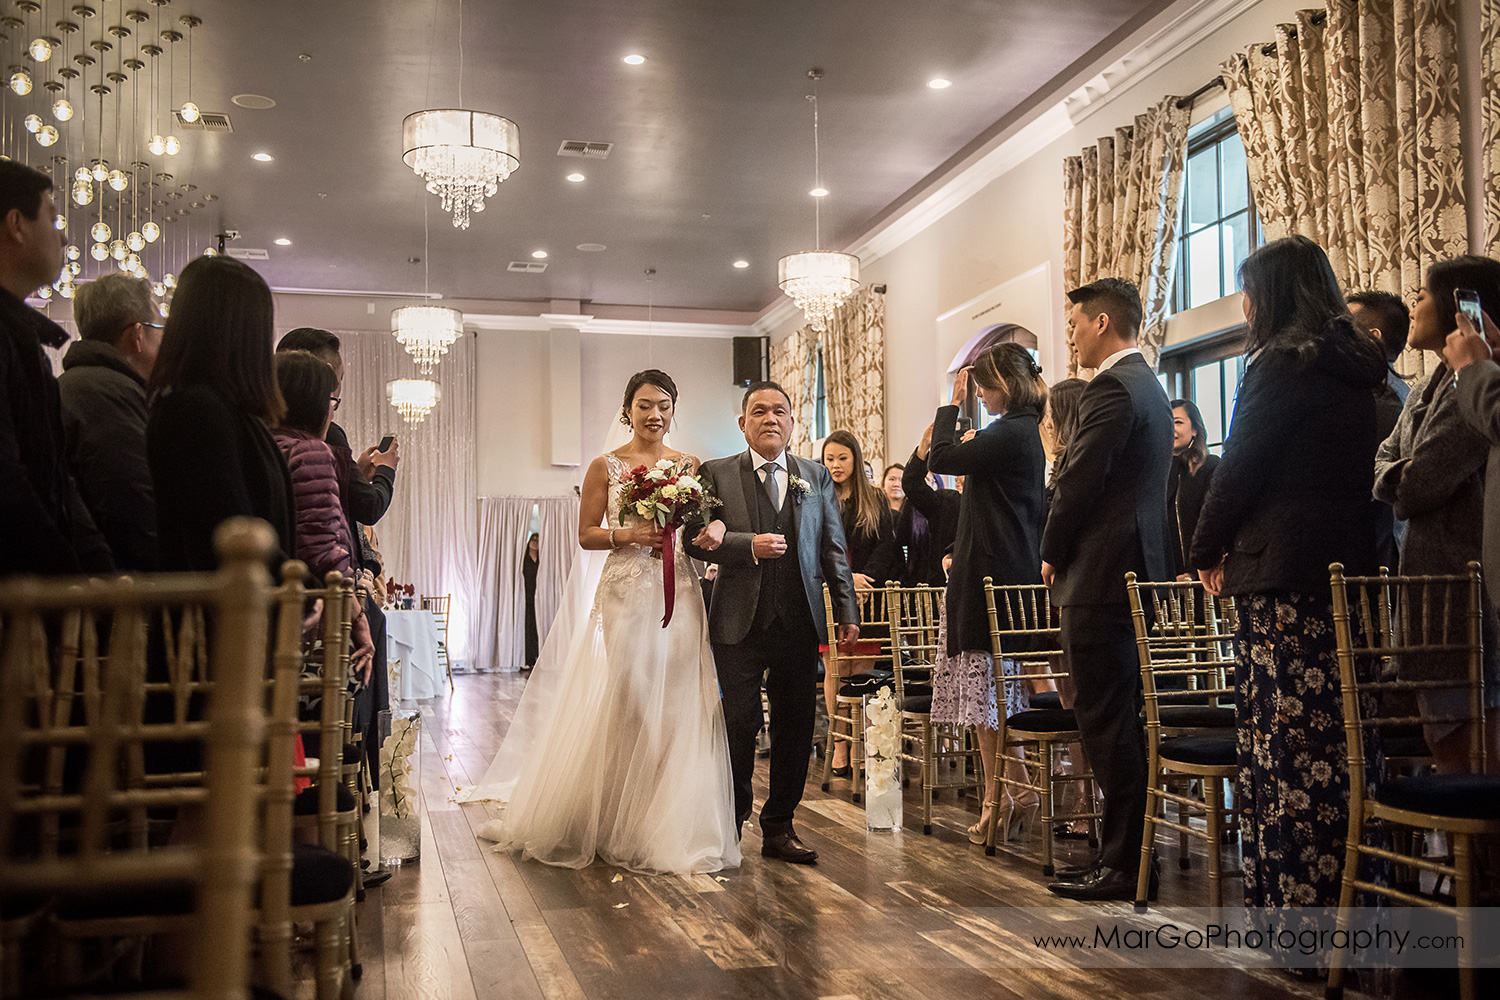 bride waling down the aisle during wedding ceremony at Sunol's Casa Bella